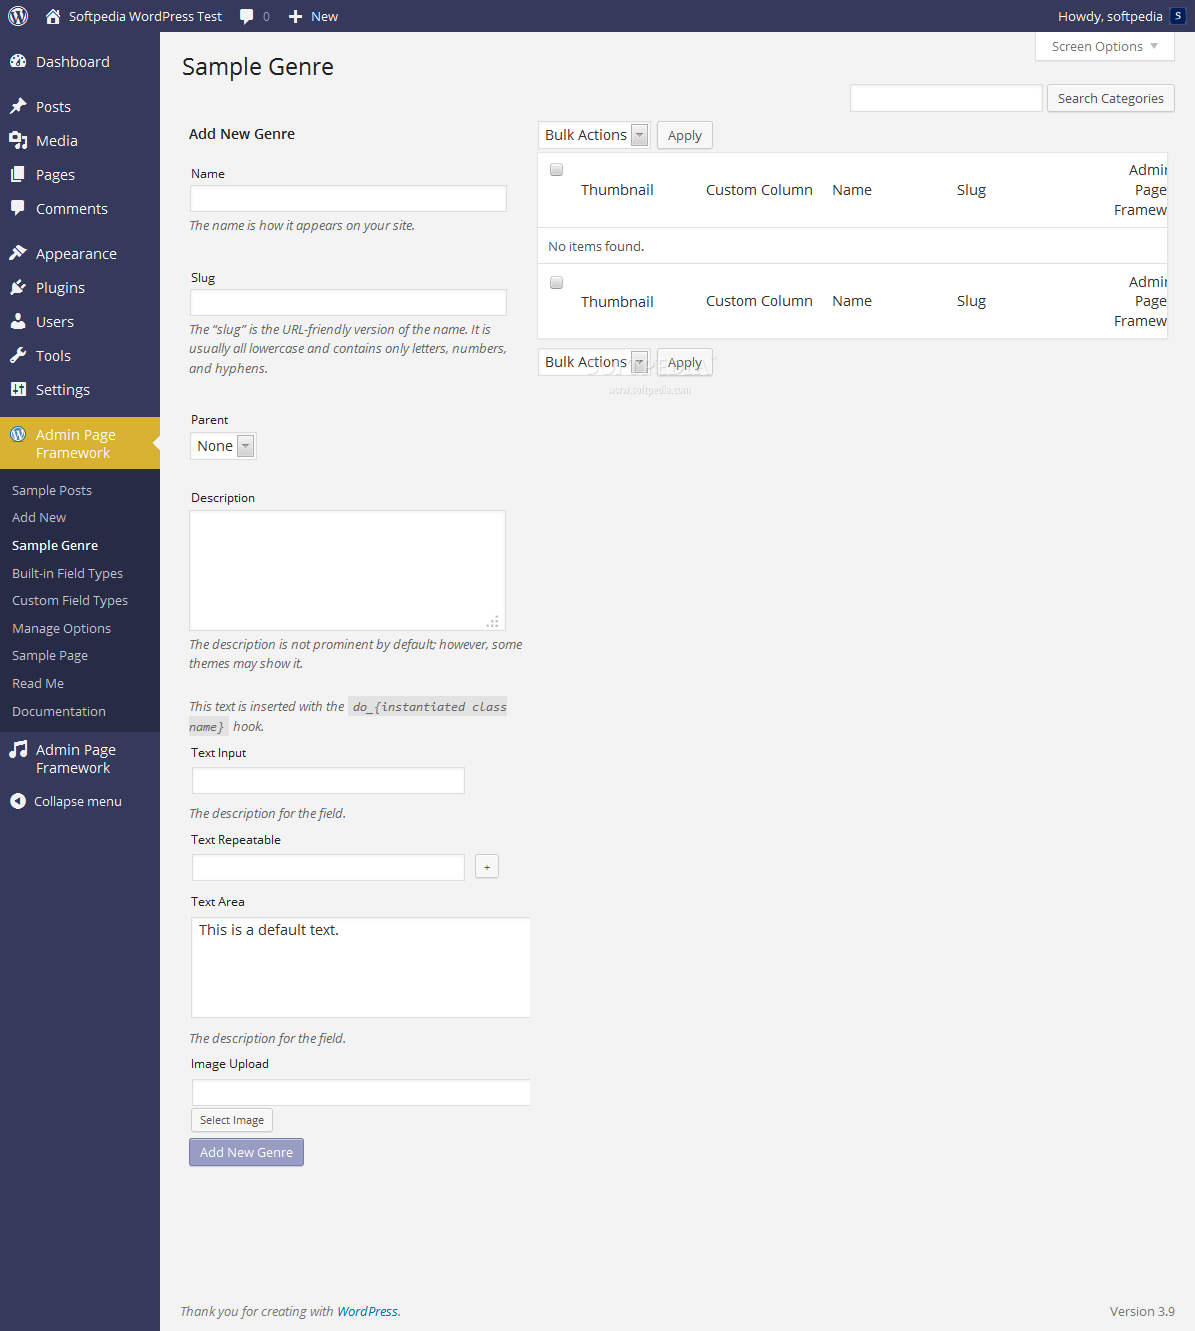 Admin Page Framework - Taxonomy integration is also supported